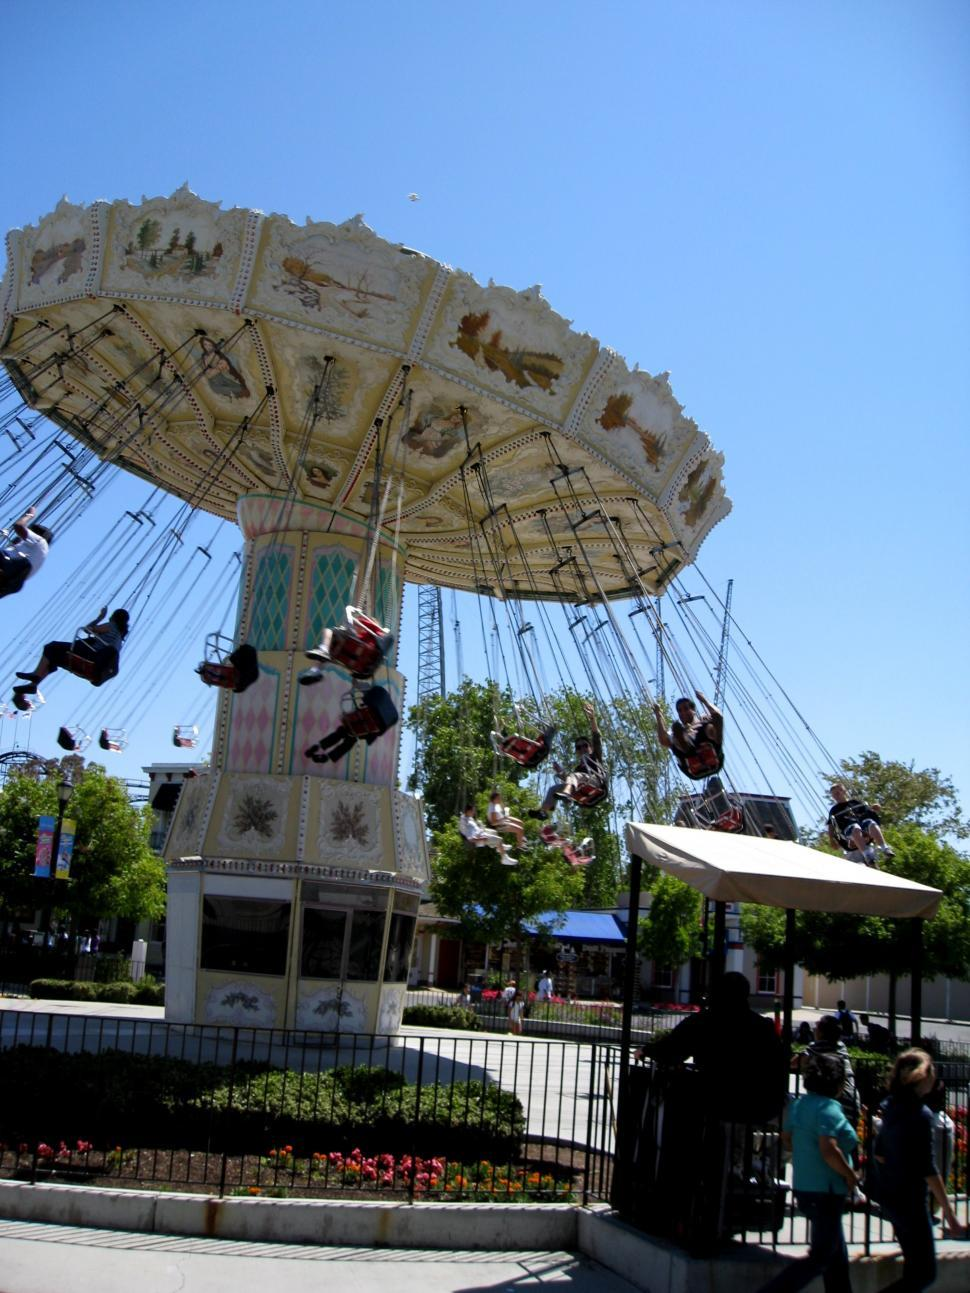 Download Free Stock HD Photo of Carnival/Swing Ride Online